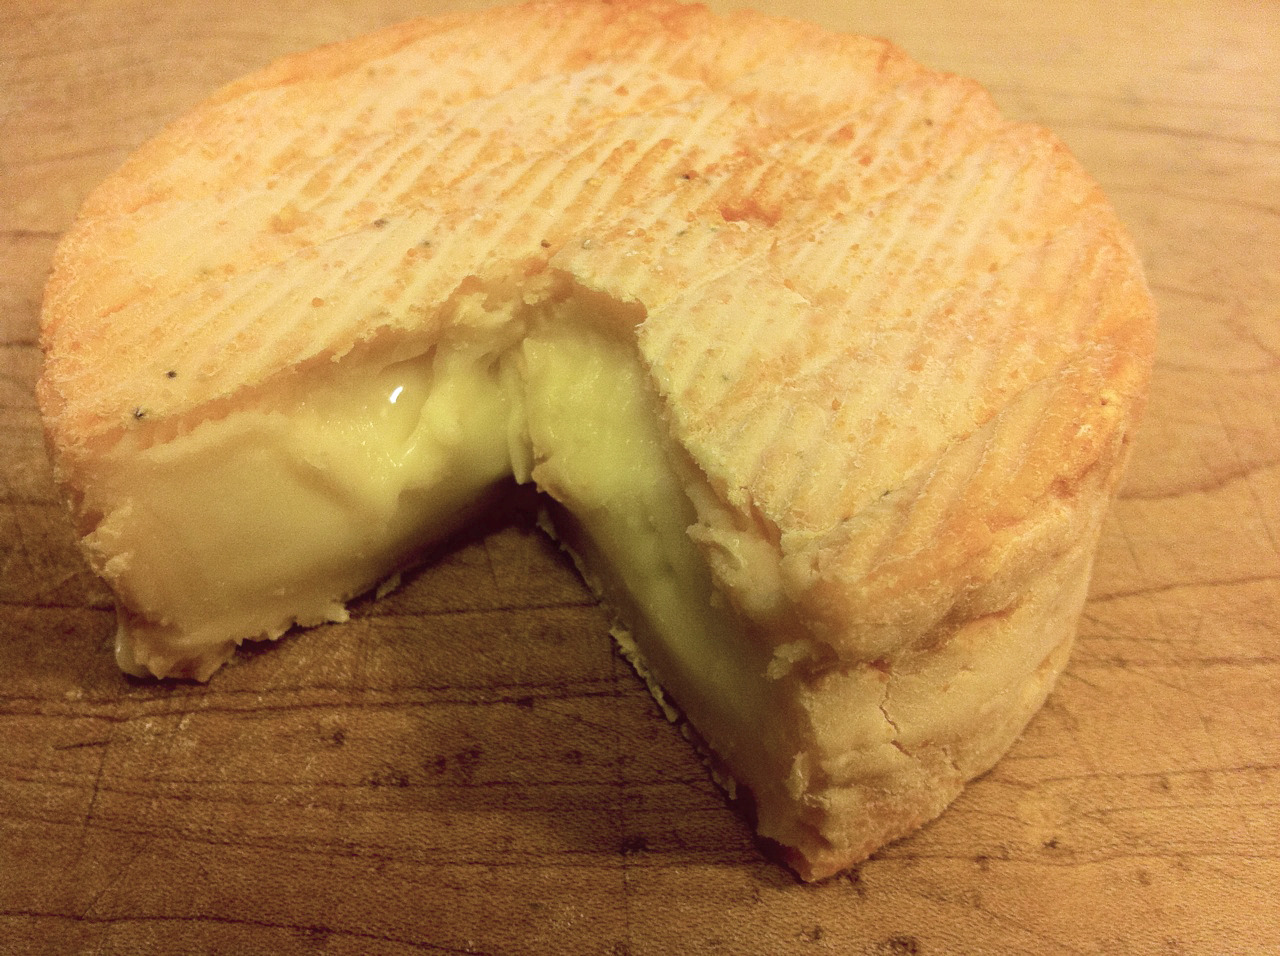 Petit Frere, from Crave Brothers, a washed rind, soft-ripened cheese. Purchased at Stinkys.